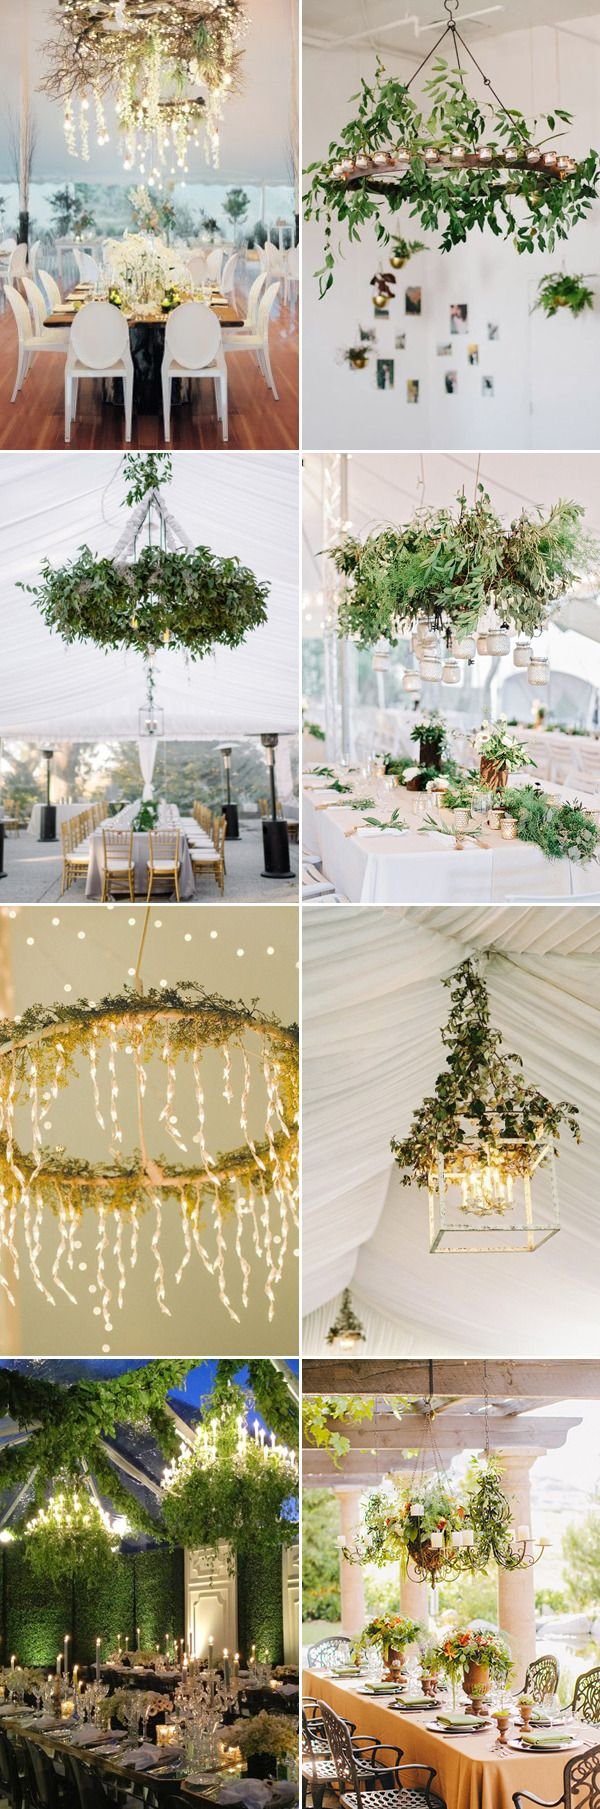 greenery chandeliers decorated wedding ideas for your big day. Inspiration for your Ambassador Marquee http://www.ambassadormarquees.co.uk/